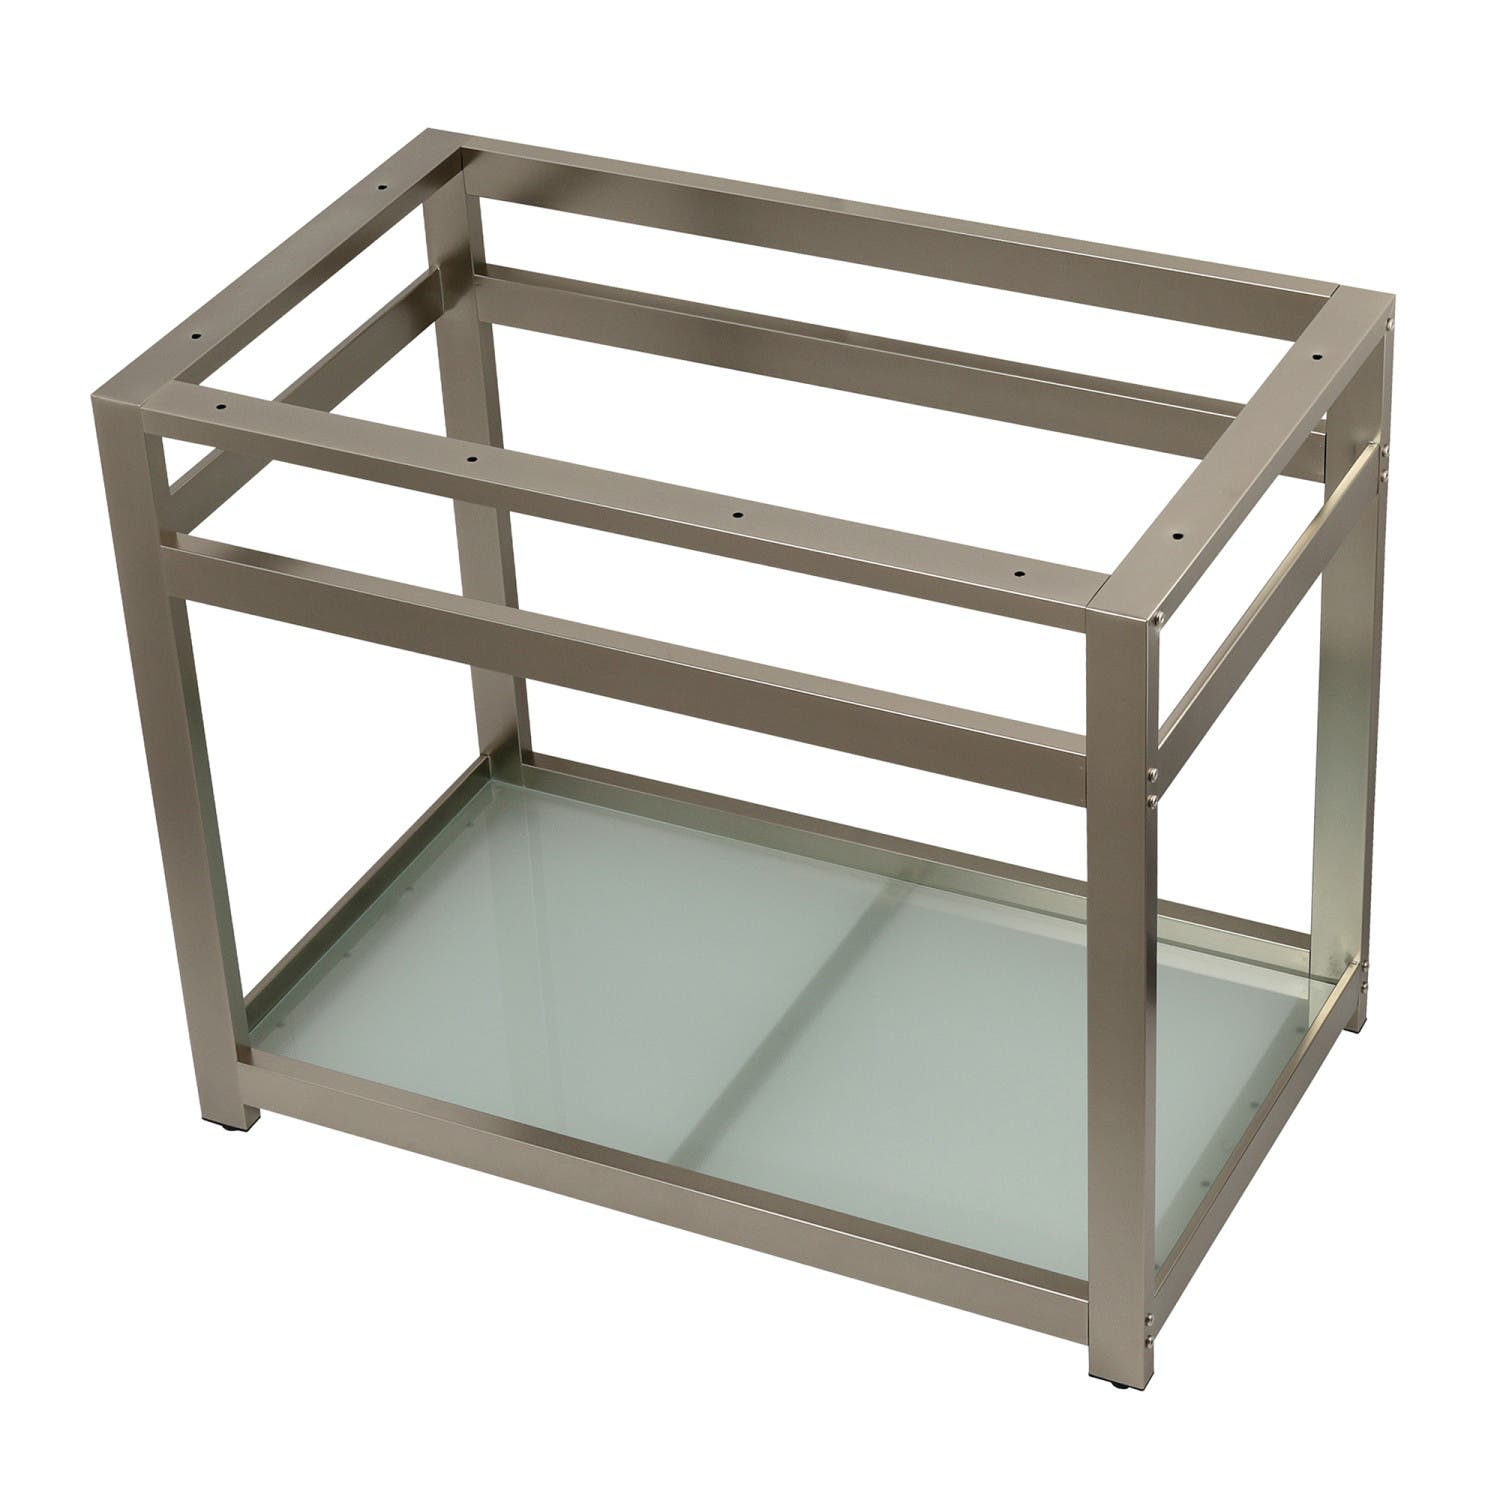 Fauceture VSP3722B8 37-Inch x 22-Inch Console Sink Base with Glass ...